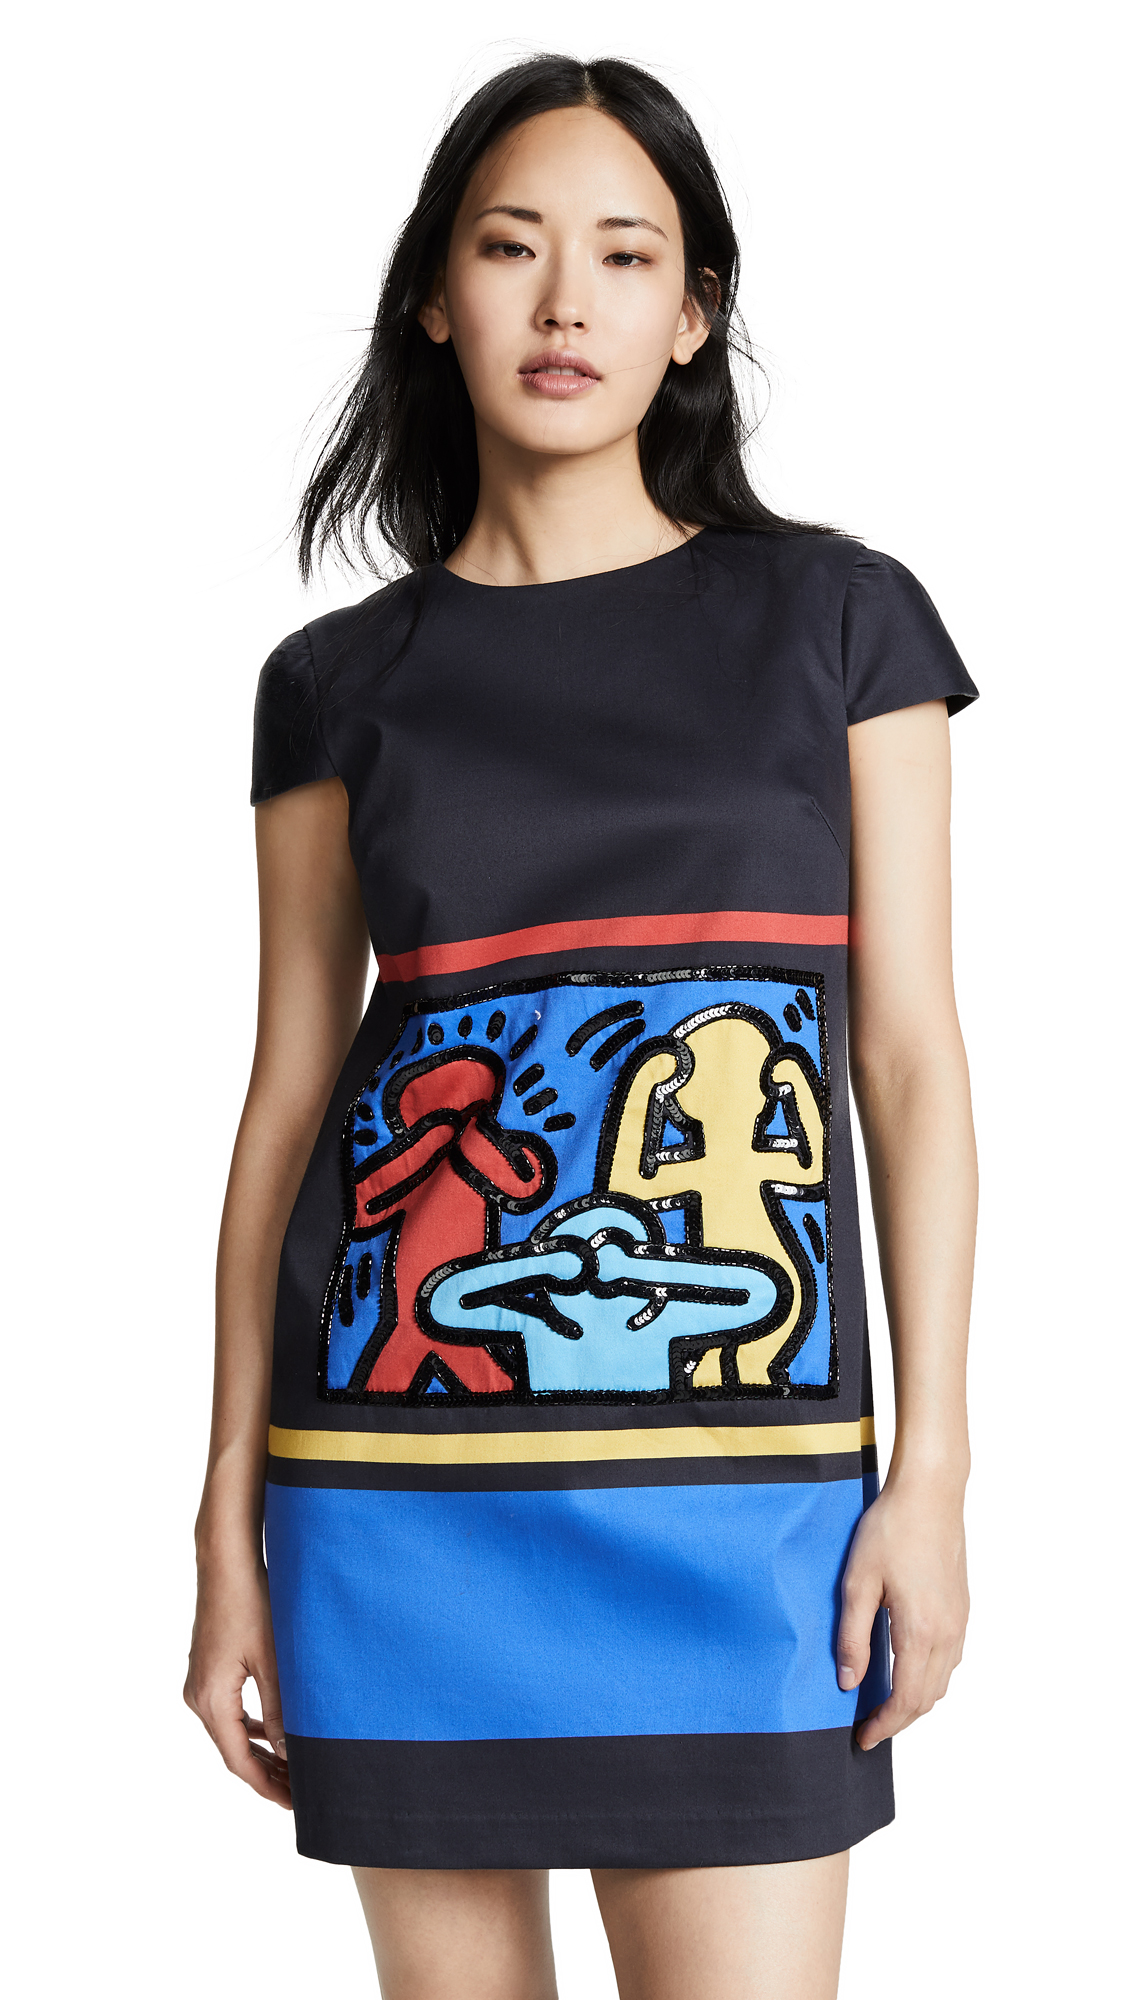 alice + olivia x Keith Haring Clyde Embellished A-Line Shift Dress - Multi